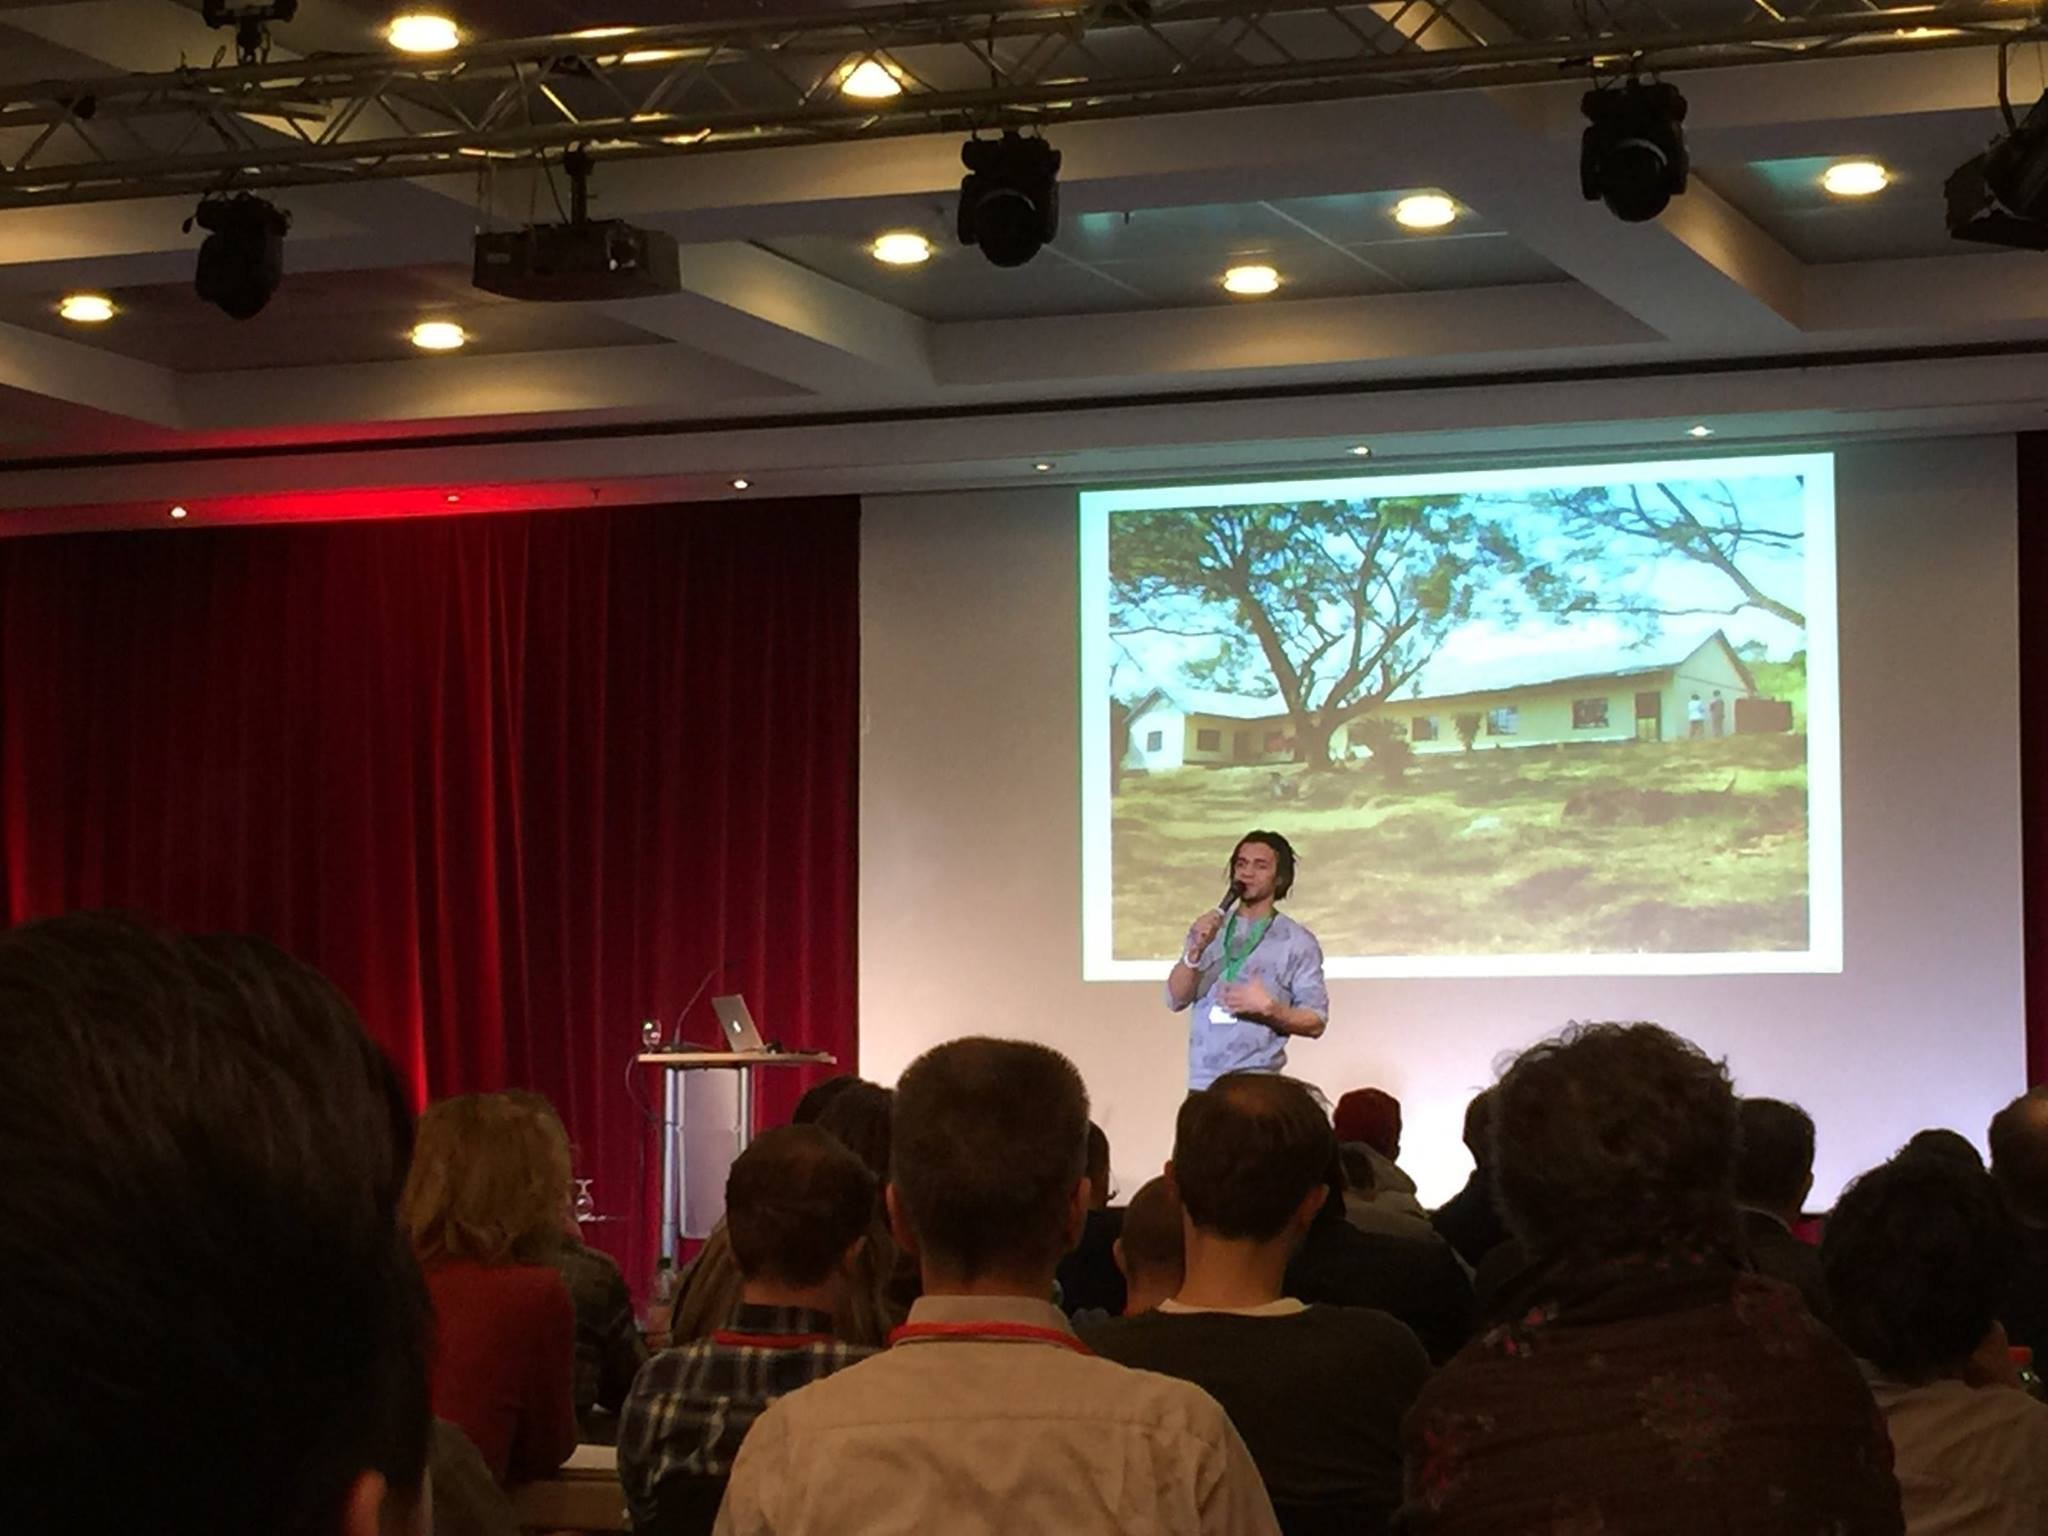 Johnny Strange von Culcha Candela auf der Bühne beim Internet Marketing Kongress 2015